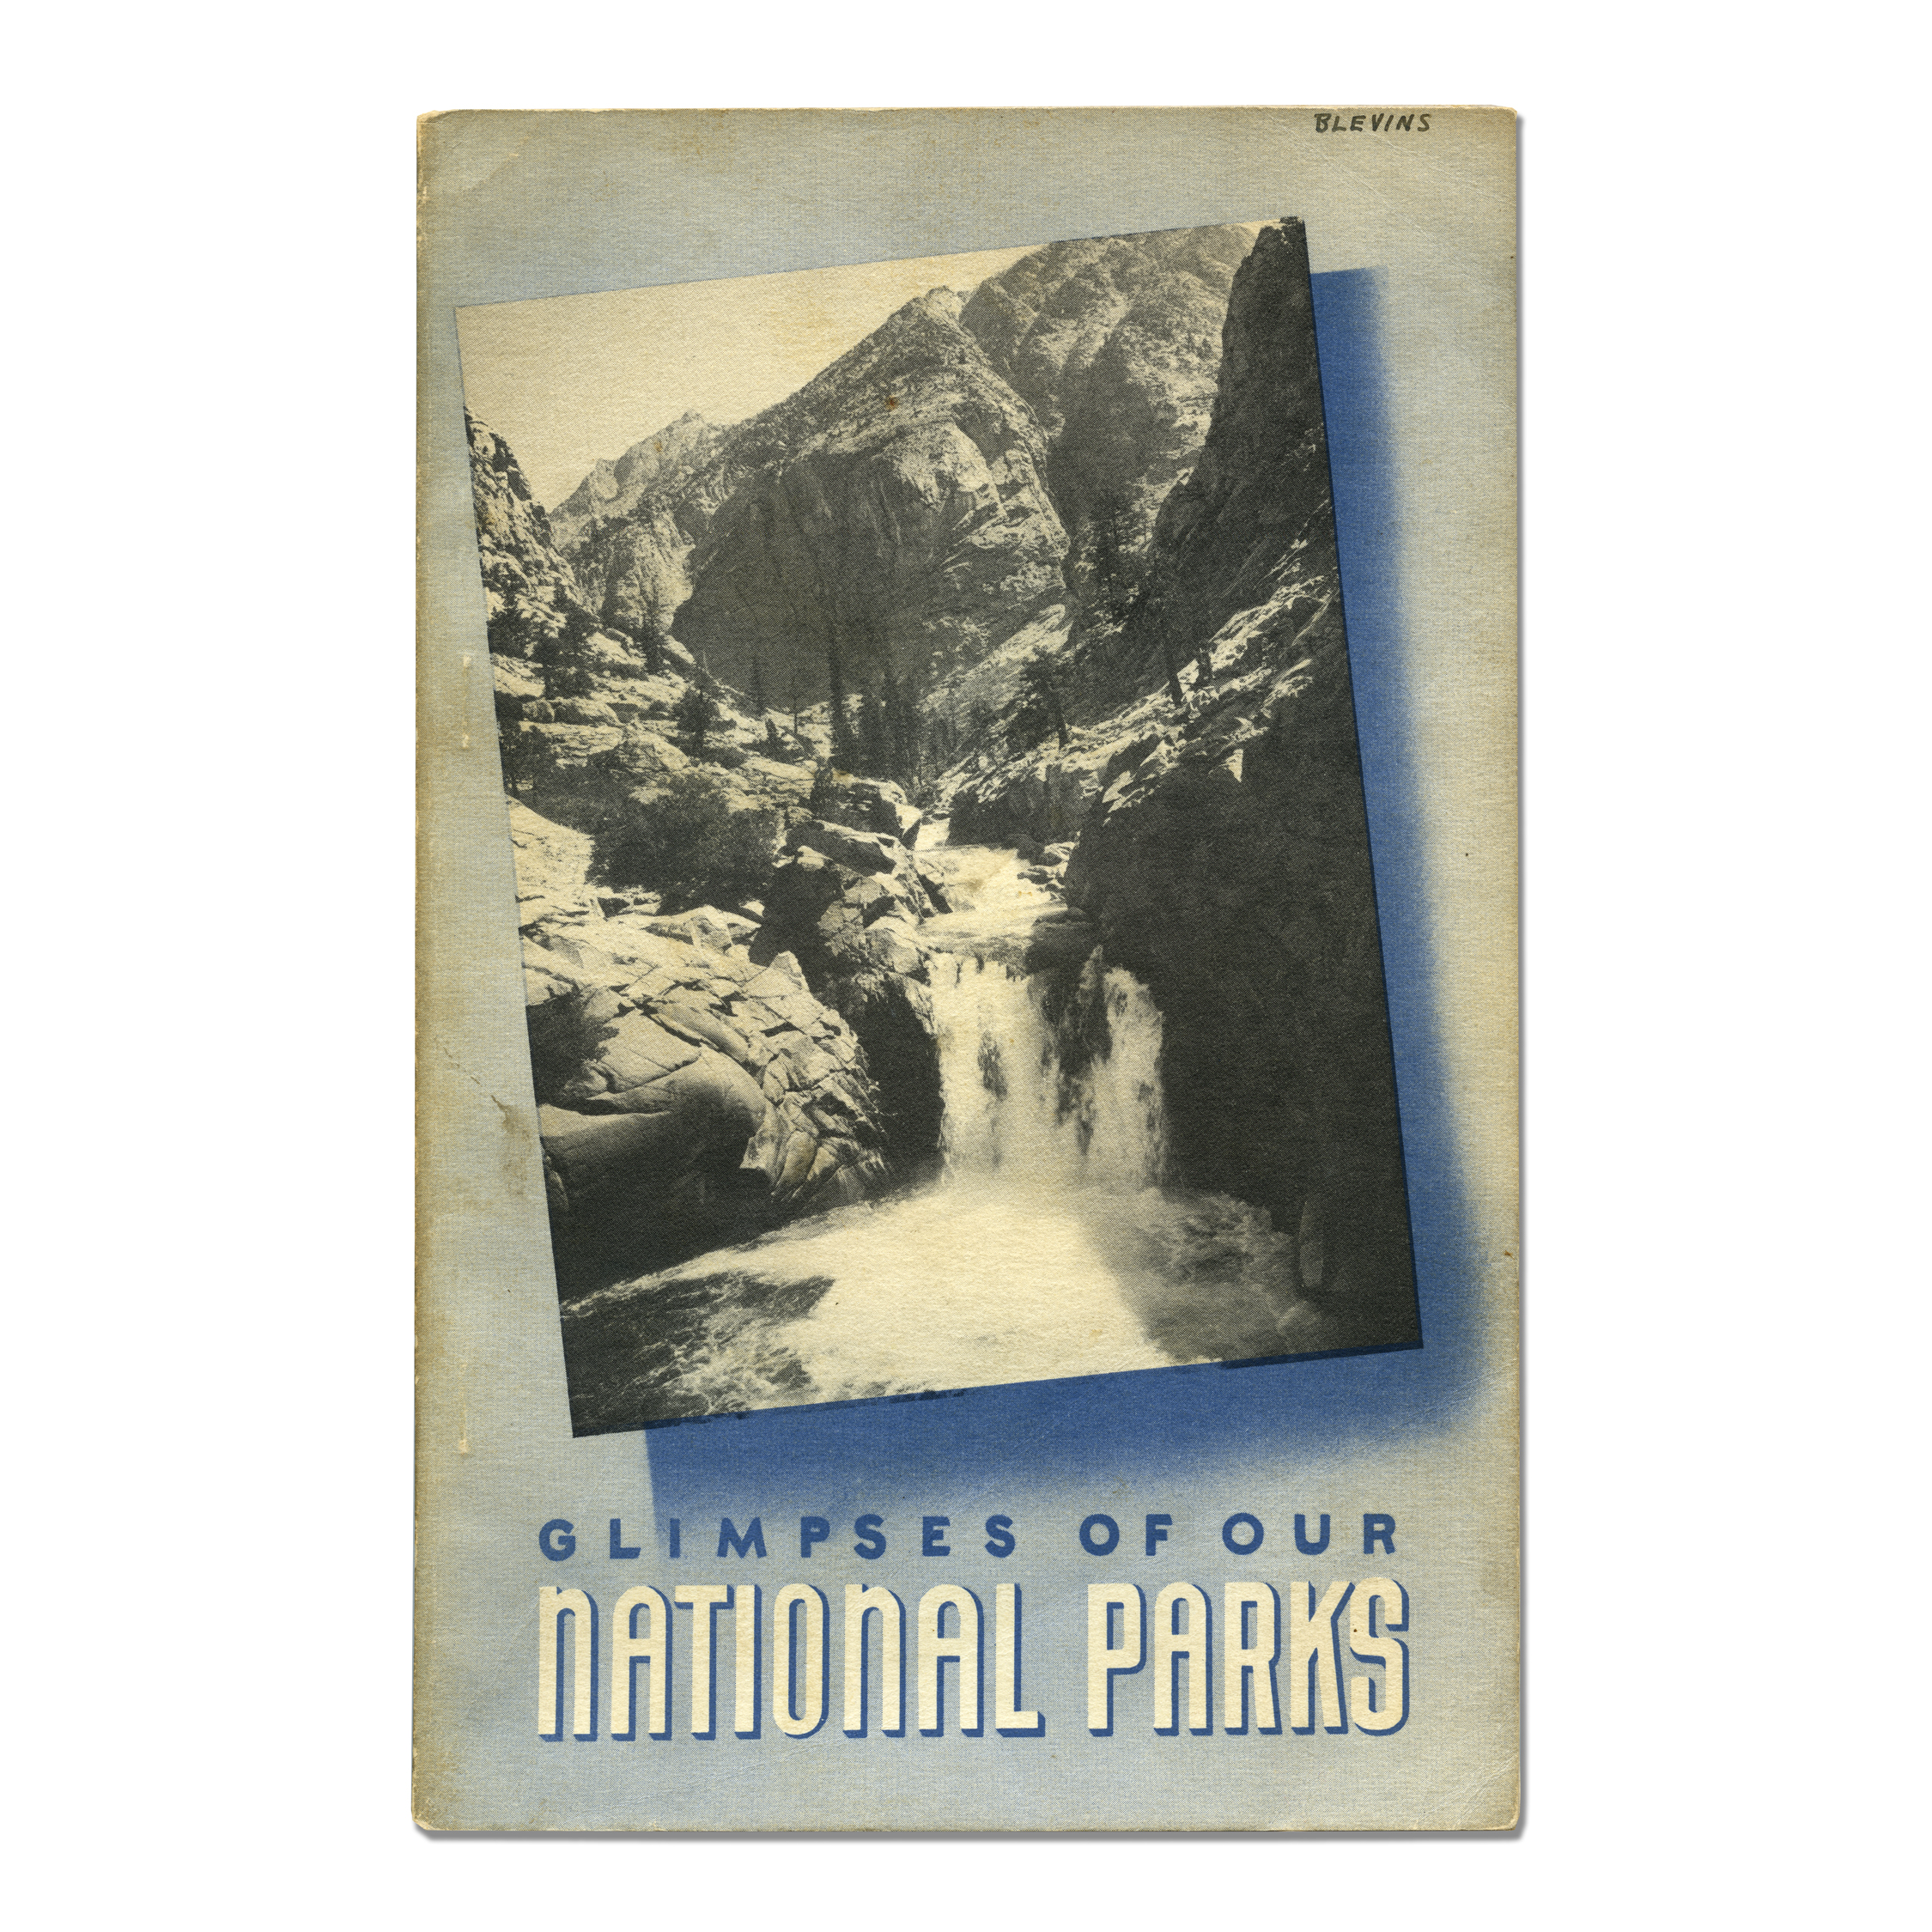 1941_glimpses_of_our_national_parks_brochure.jpg